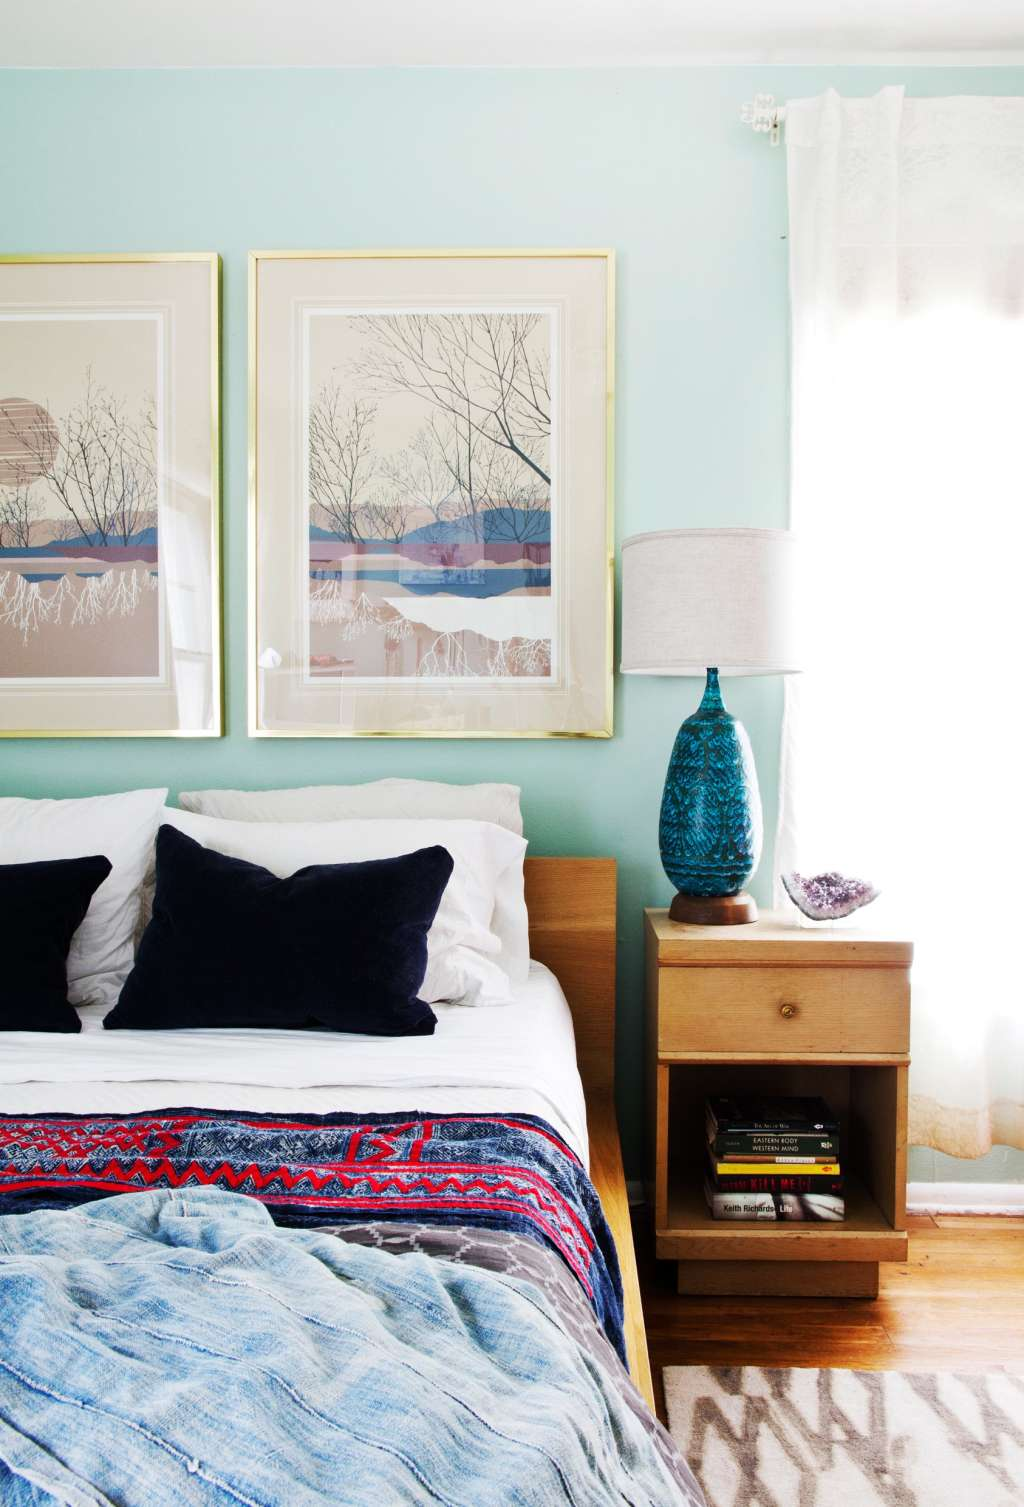 Give Up the Guest Room: 5 Other Ideas to Squeeze the Most ...